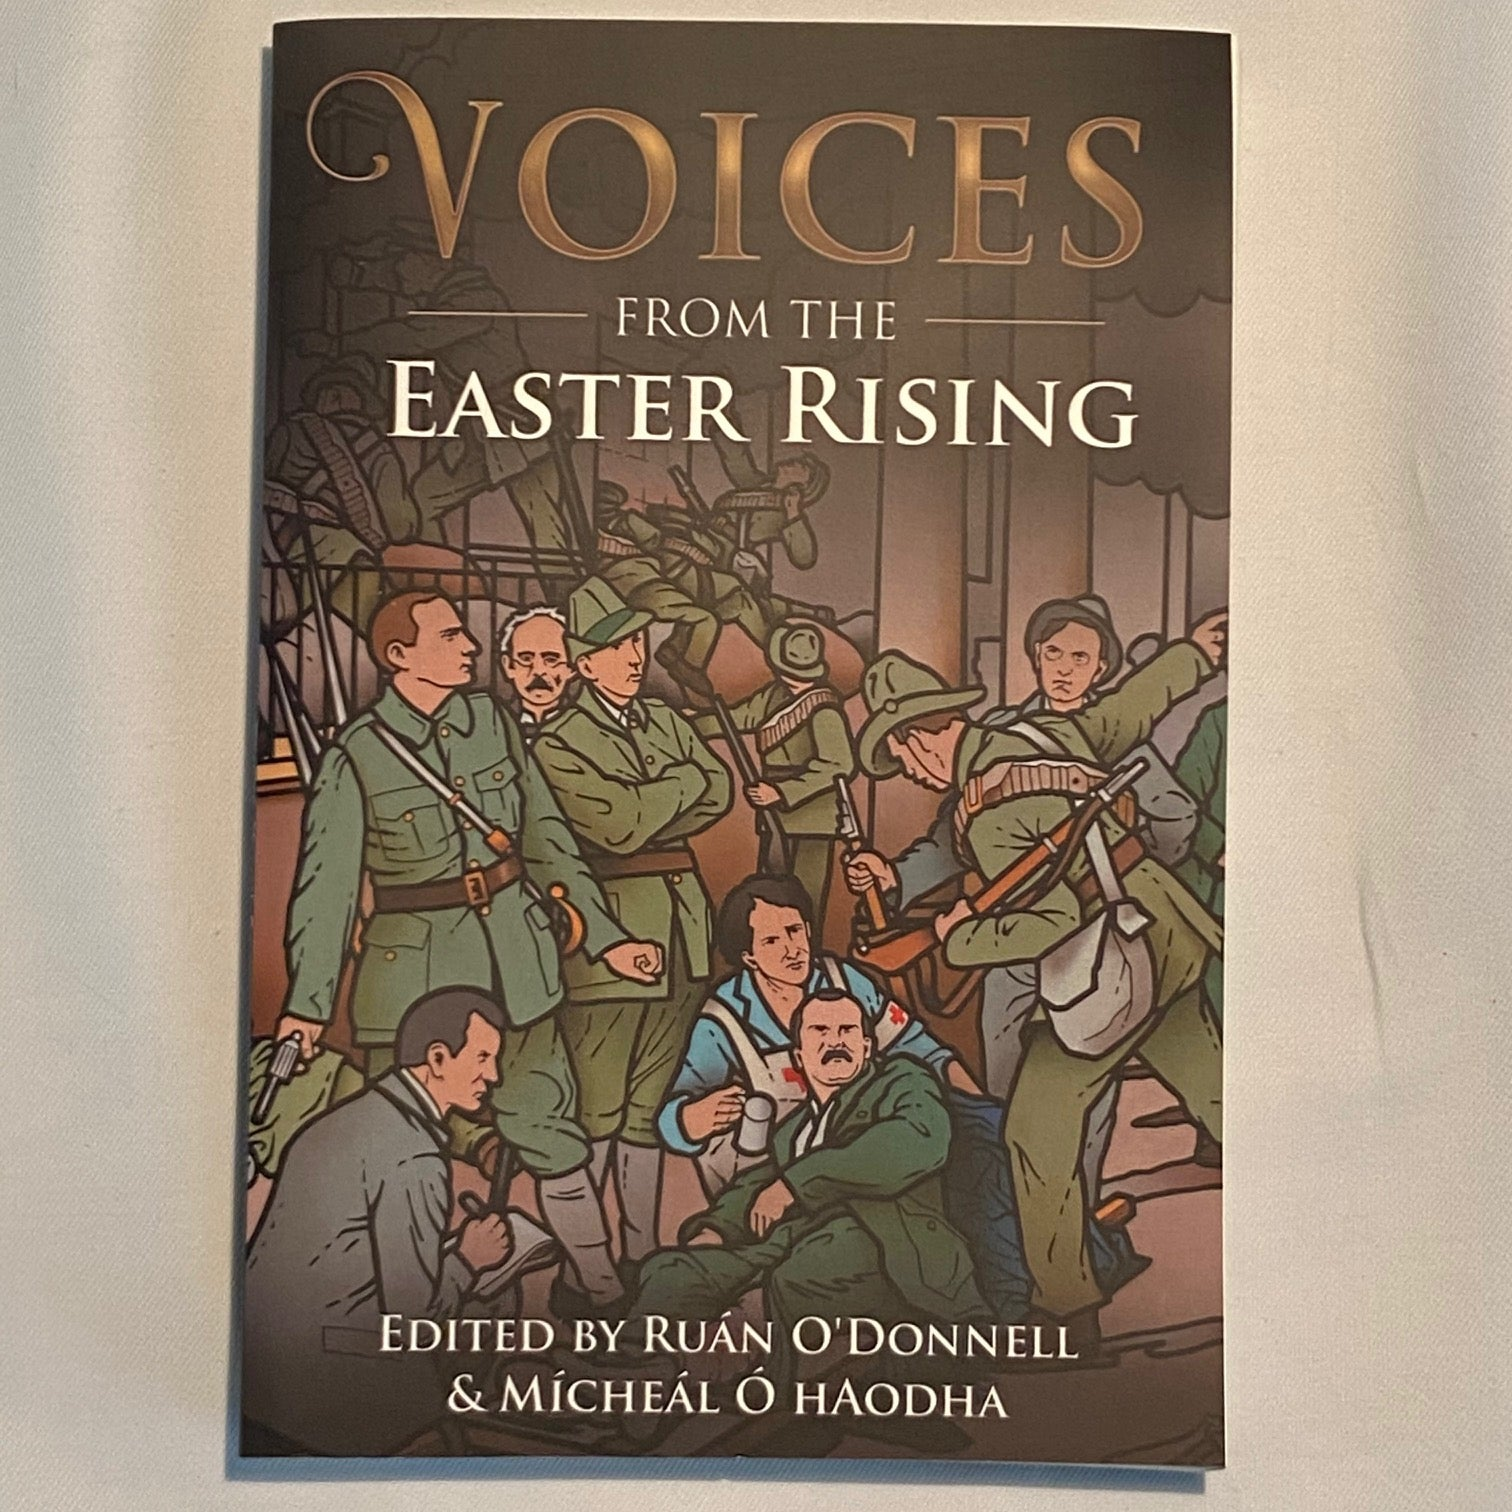 Image of Voices from the Easter Rising